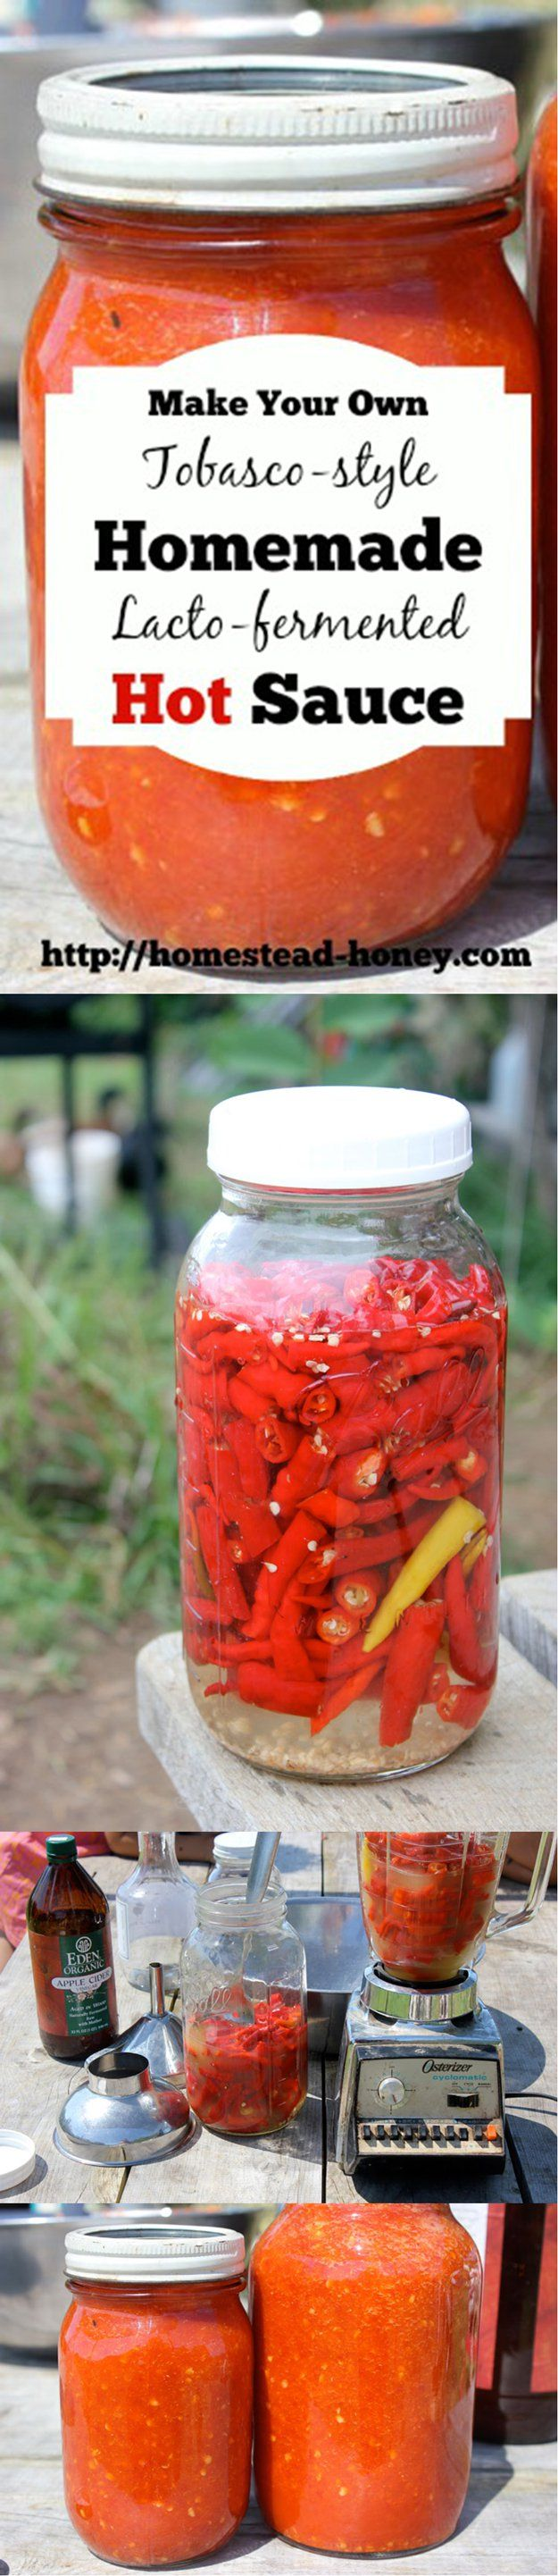 Homemade Receta Hot Sauce | http://artesaniasdebricolaje.ru/top-14-hot-sauce-recipes/